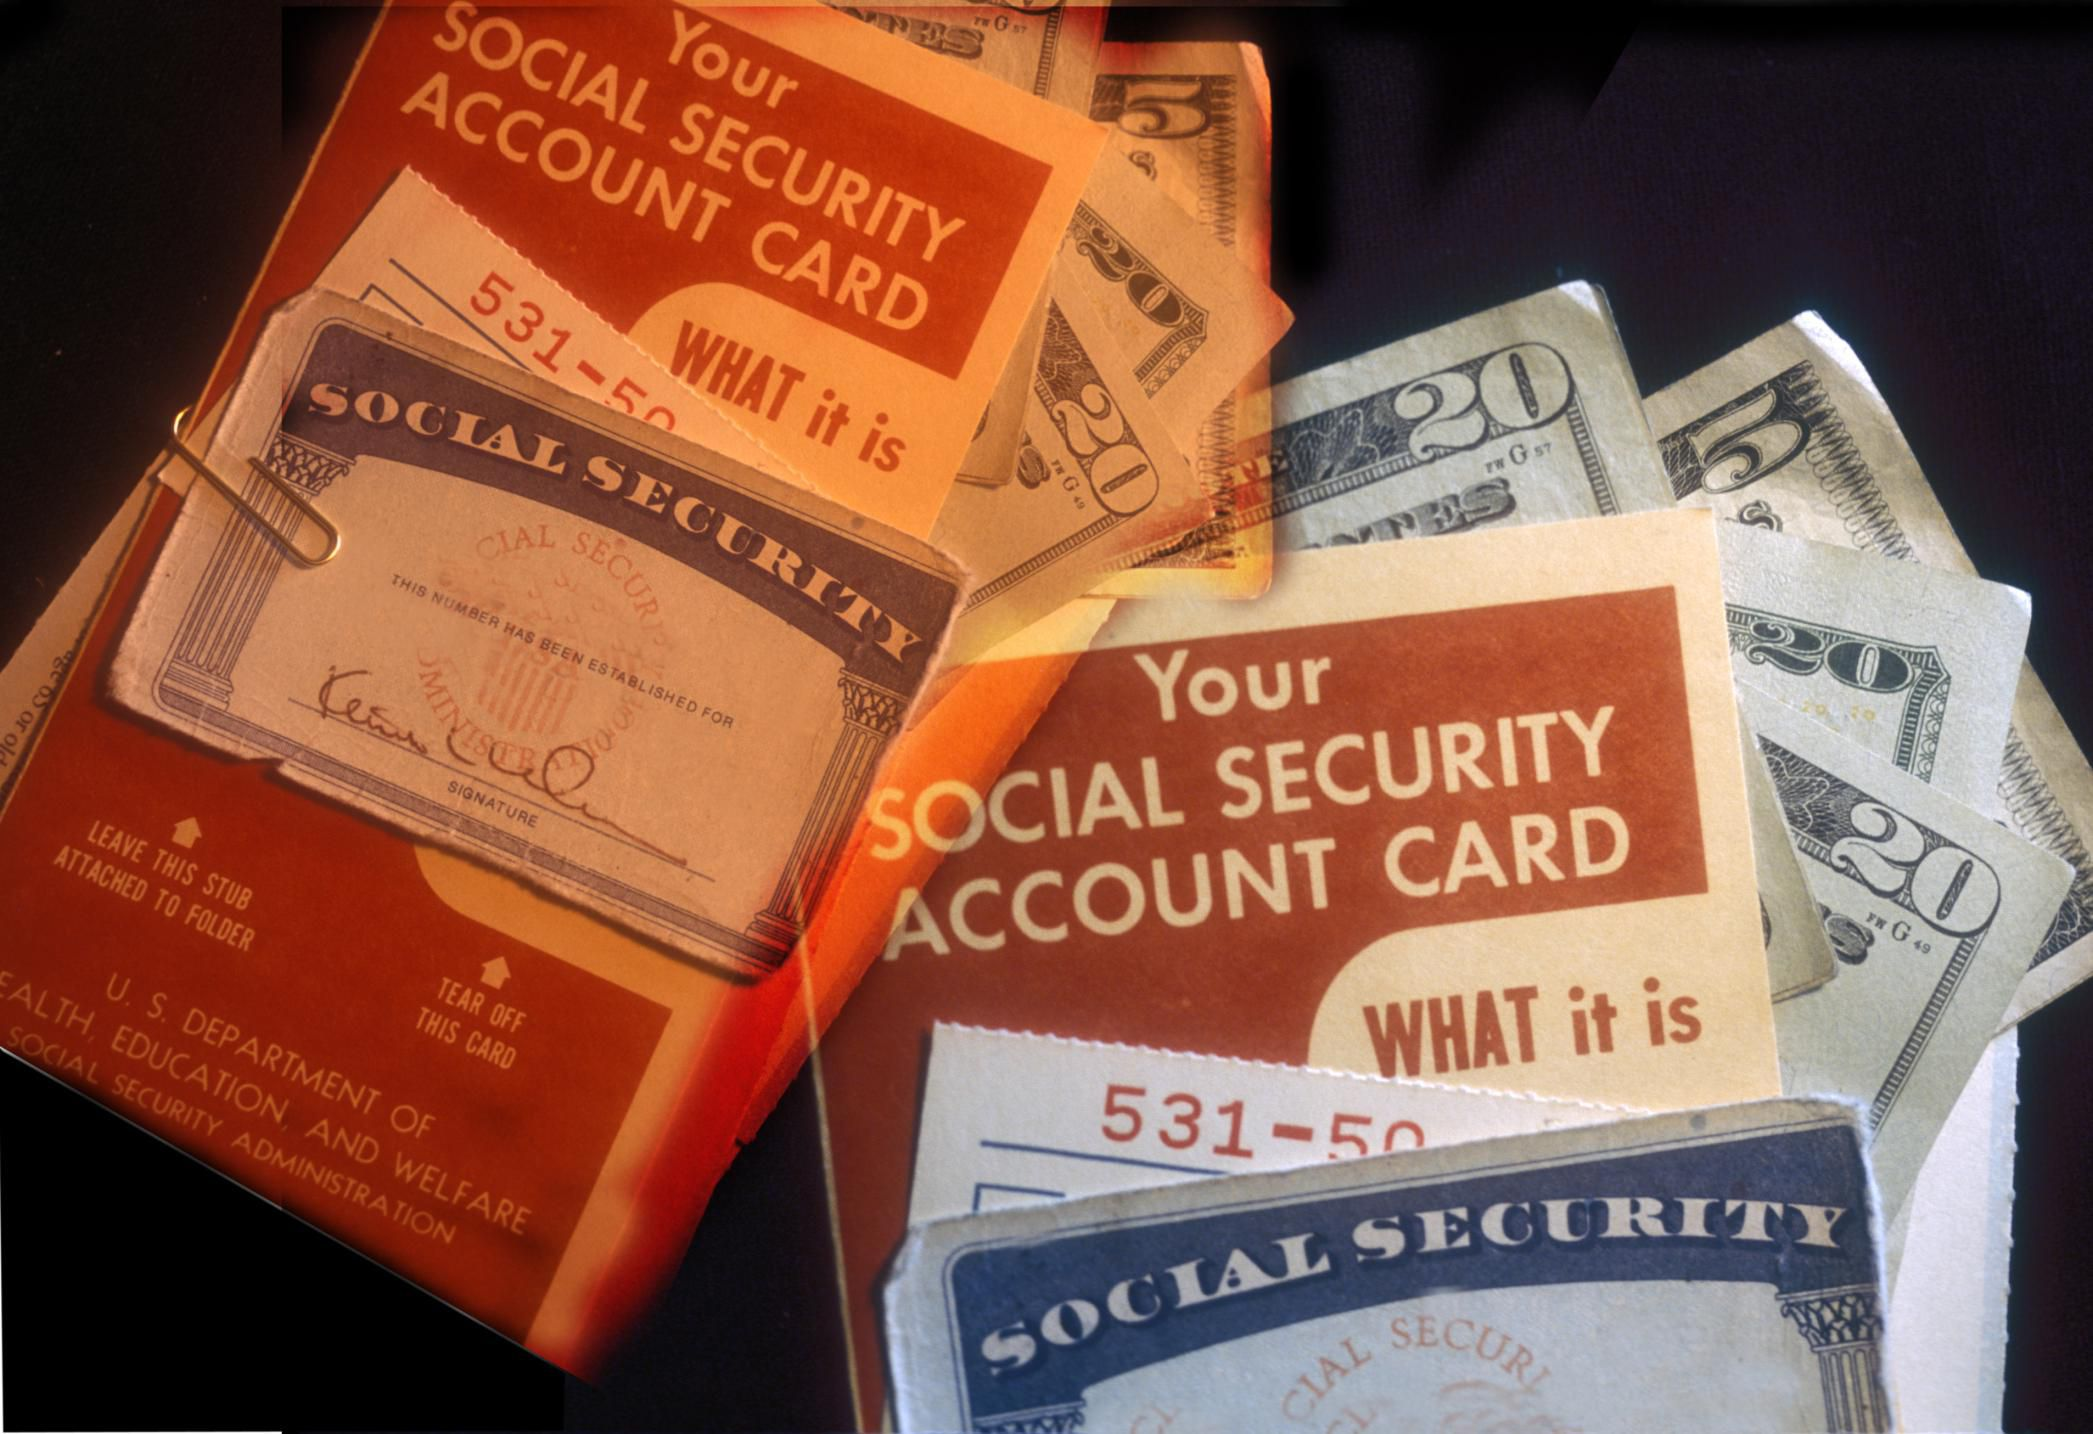 Social Security Benefits Tax Treatment And Withholding